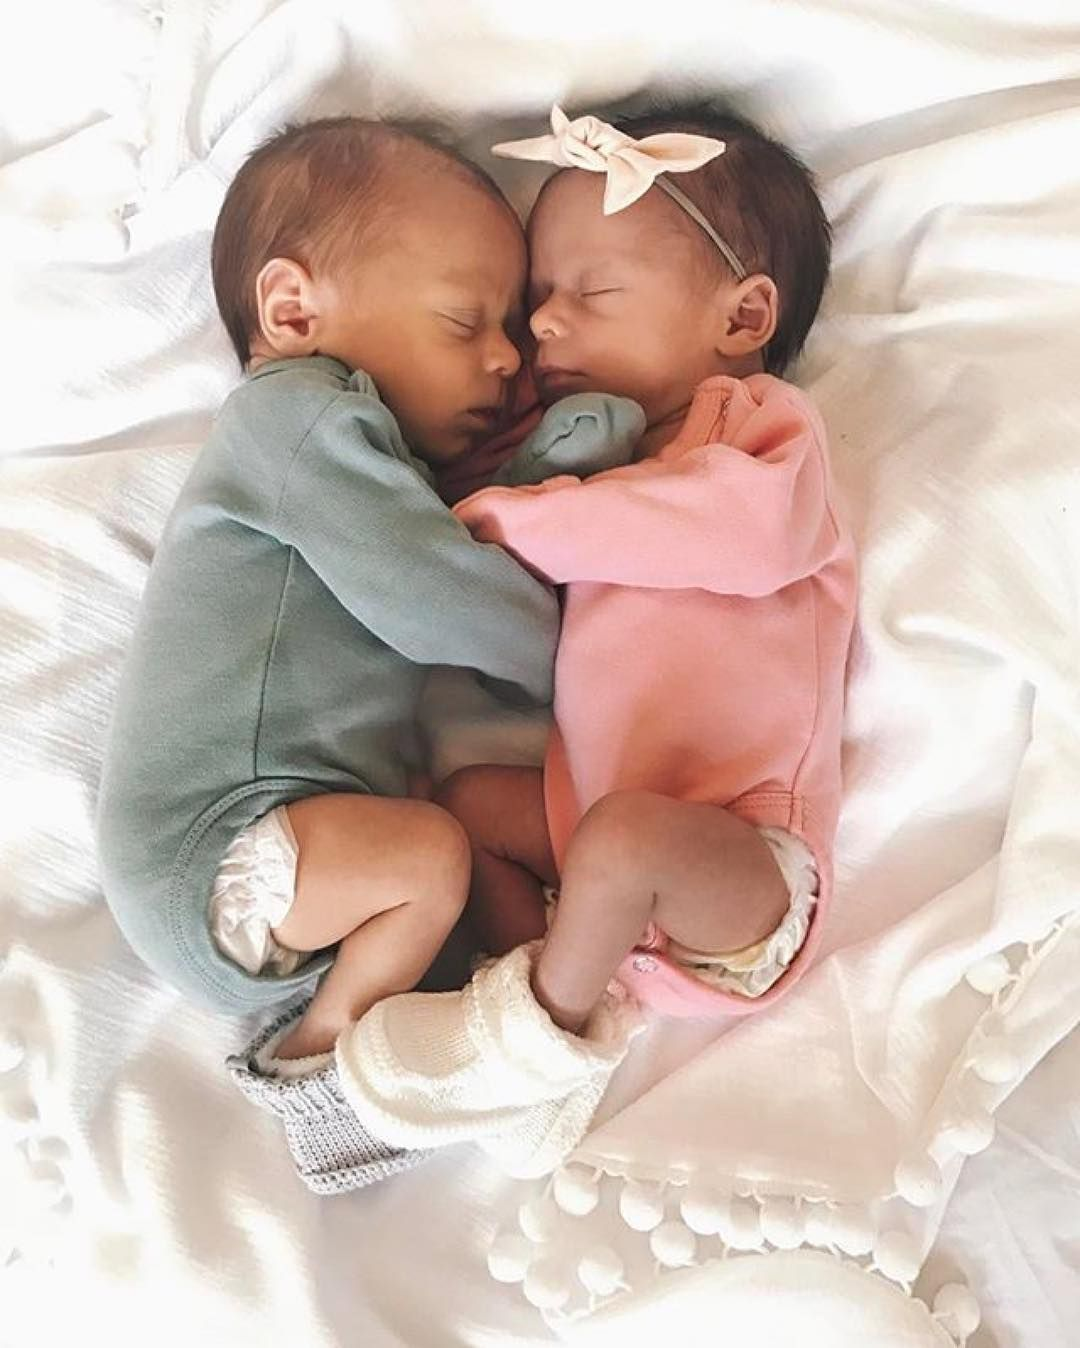 978 Likes 10 Comments Barneklaer Inspiration Og Tips Mini Stil On Instagram Credit Nadyacox Cute Baby Twins Twin Baby Boys Twin Baby Photos